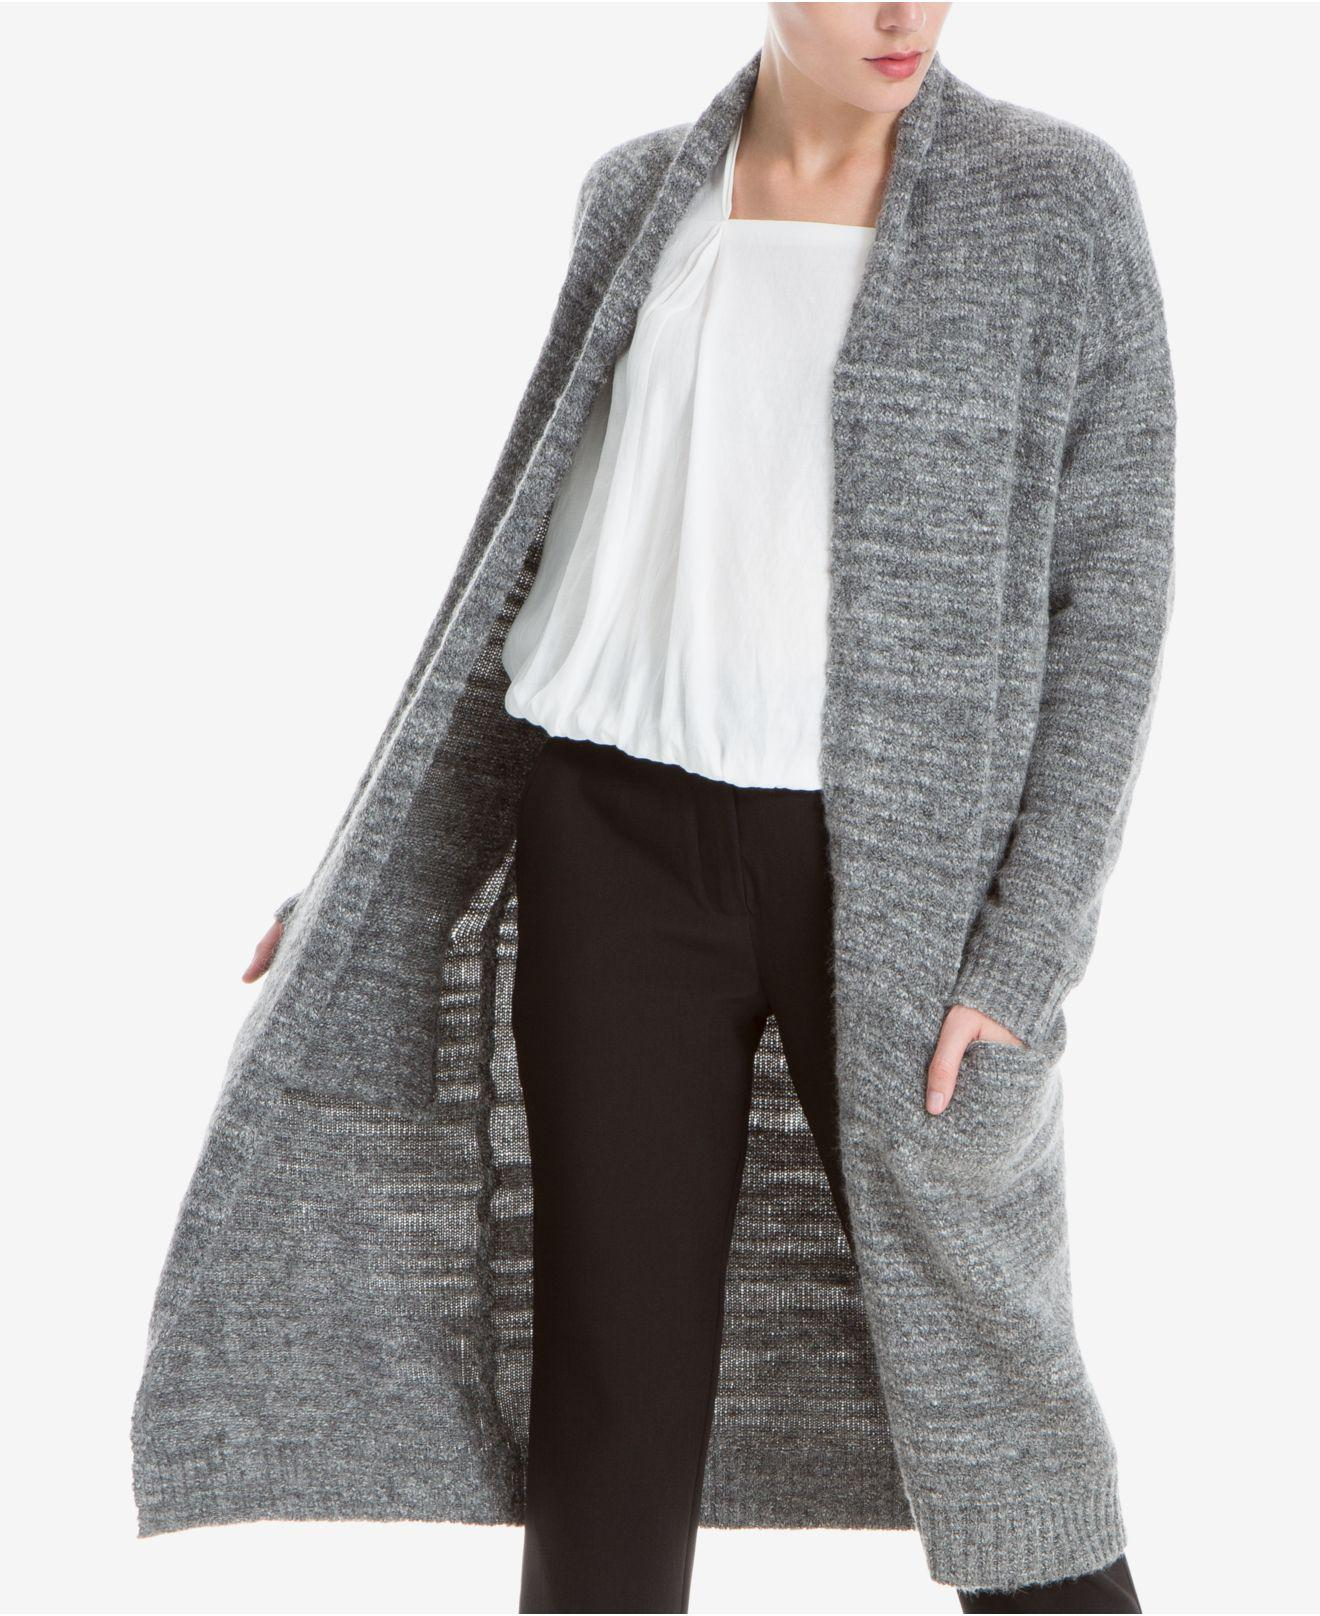 Max studio Duster Cardigan in Gray | Lyst